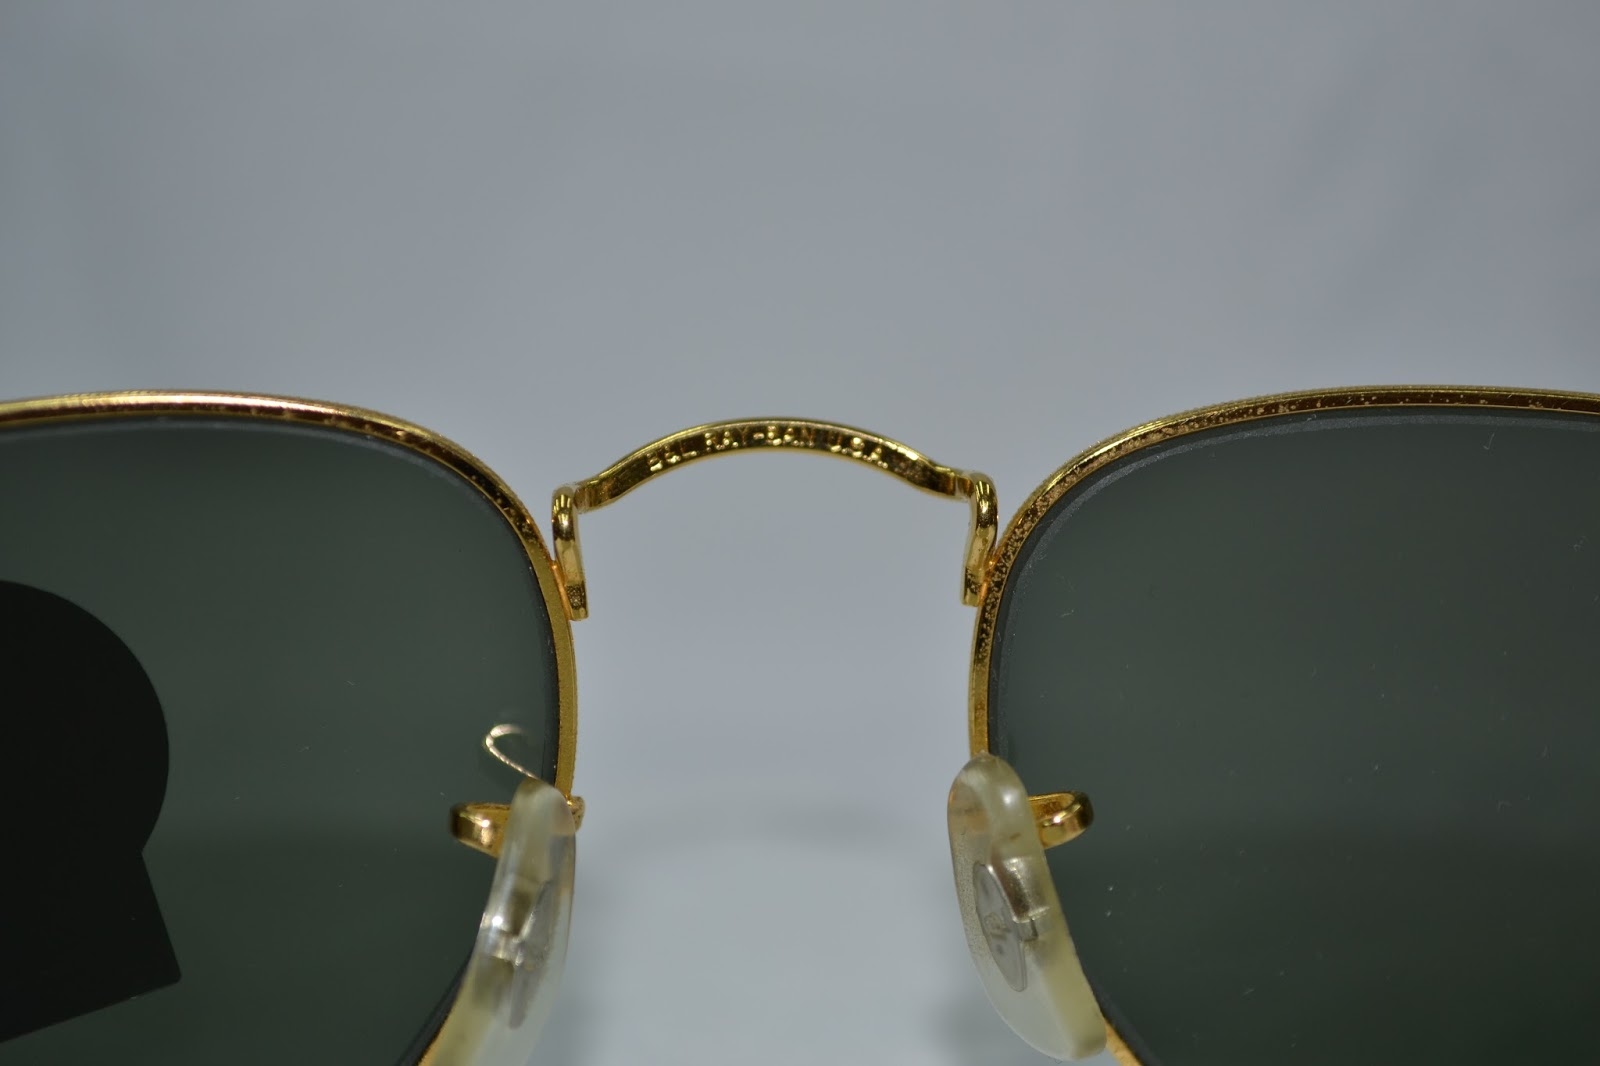 8eb504cc0b Wellcome you are looking at a Vintage Ray Ban sunglass made by Bausch and  Lomb in the USA early 90´s